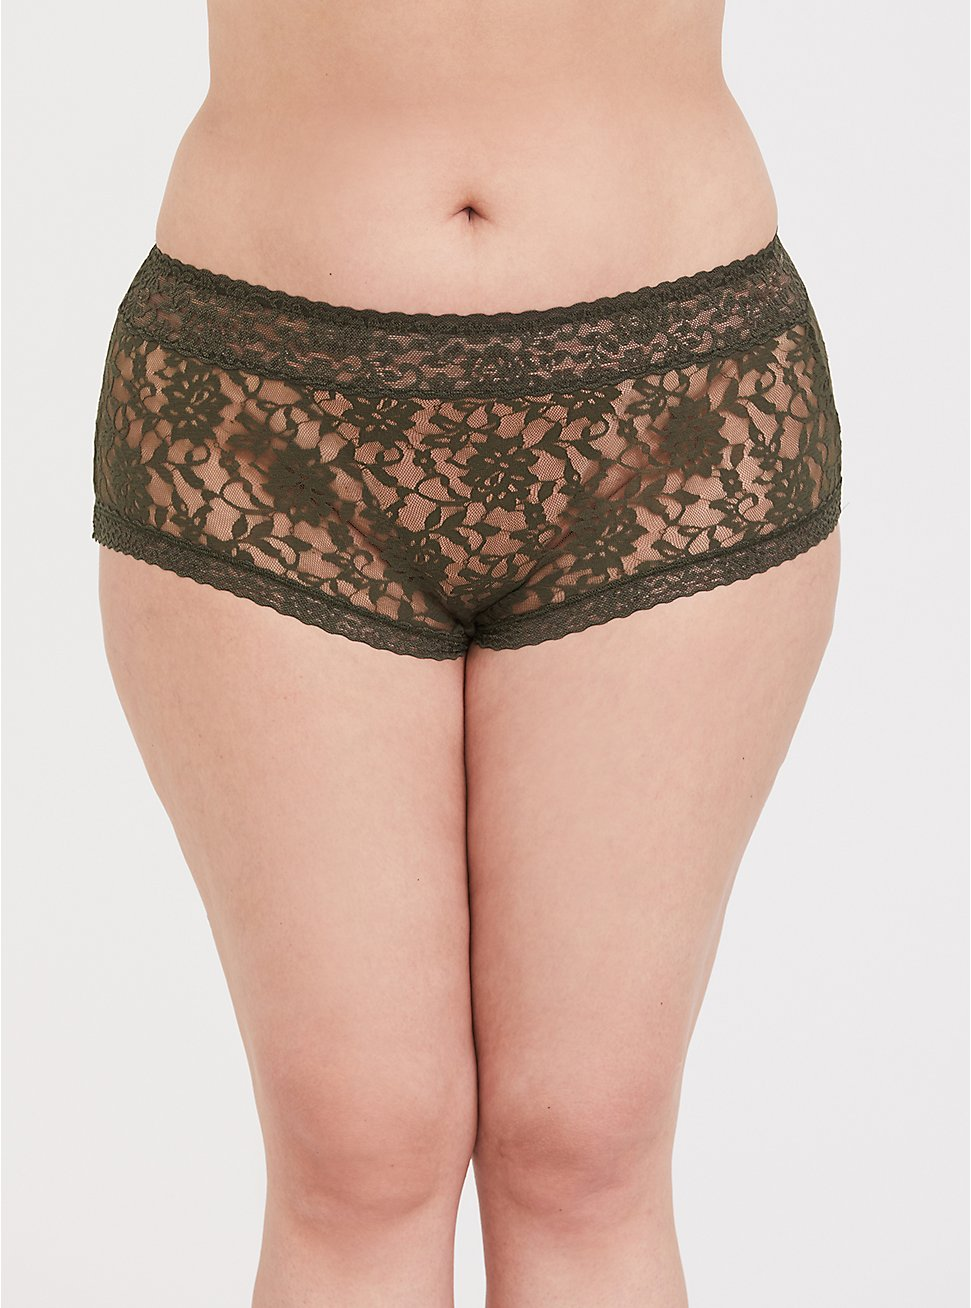 Plus Size Olive Green Lacey Brief Panty, DEEP DEPTHS, hi-res